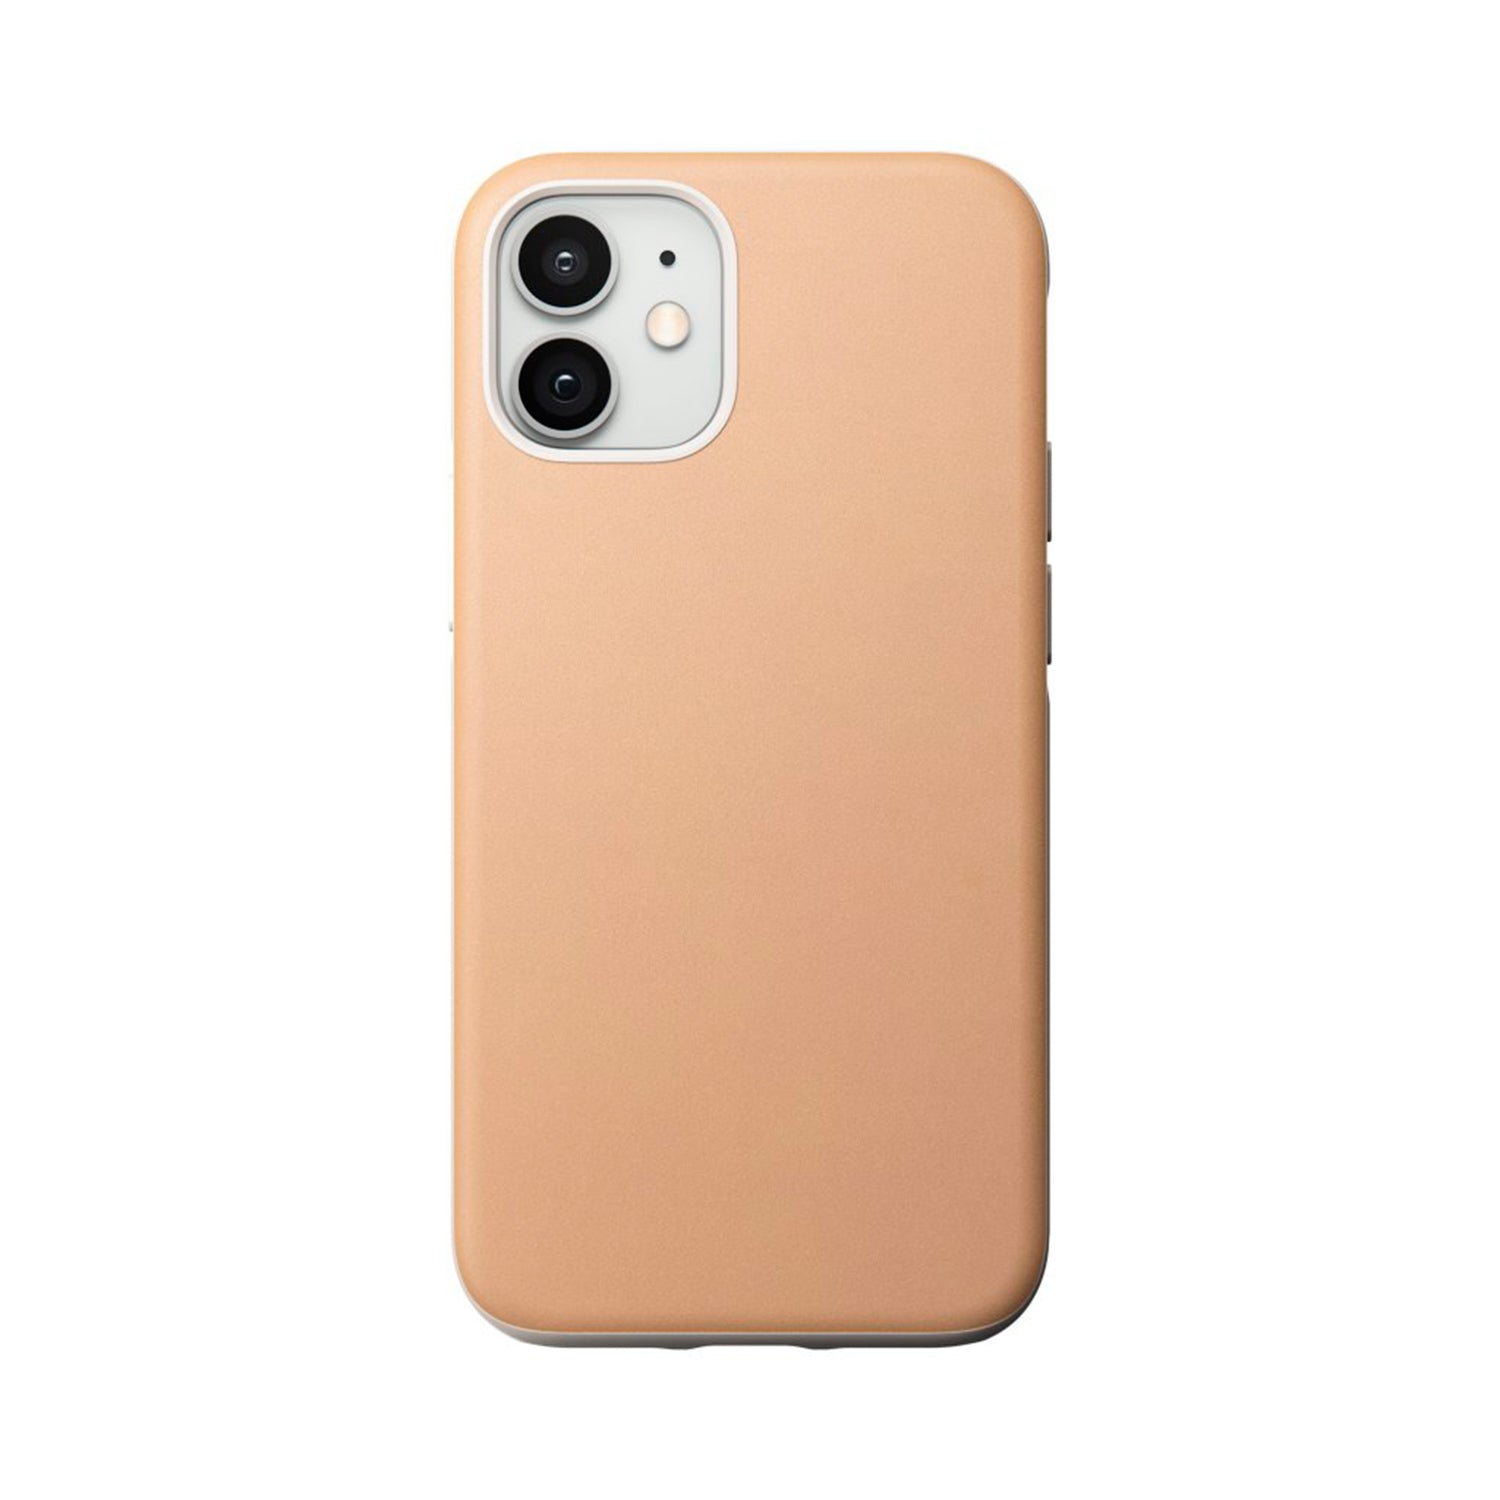 Nomad Rugged Case iPhone 12 Mini Beige